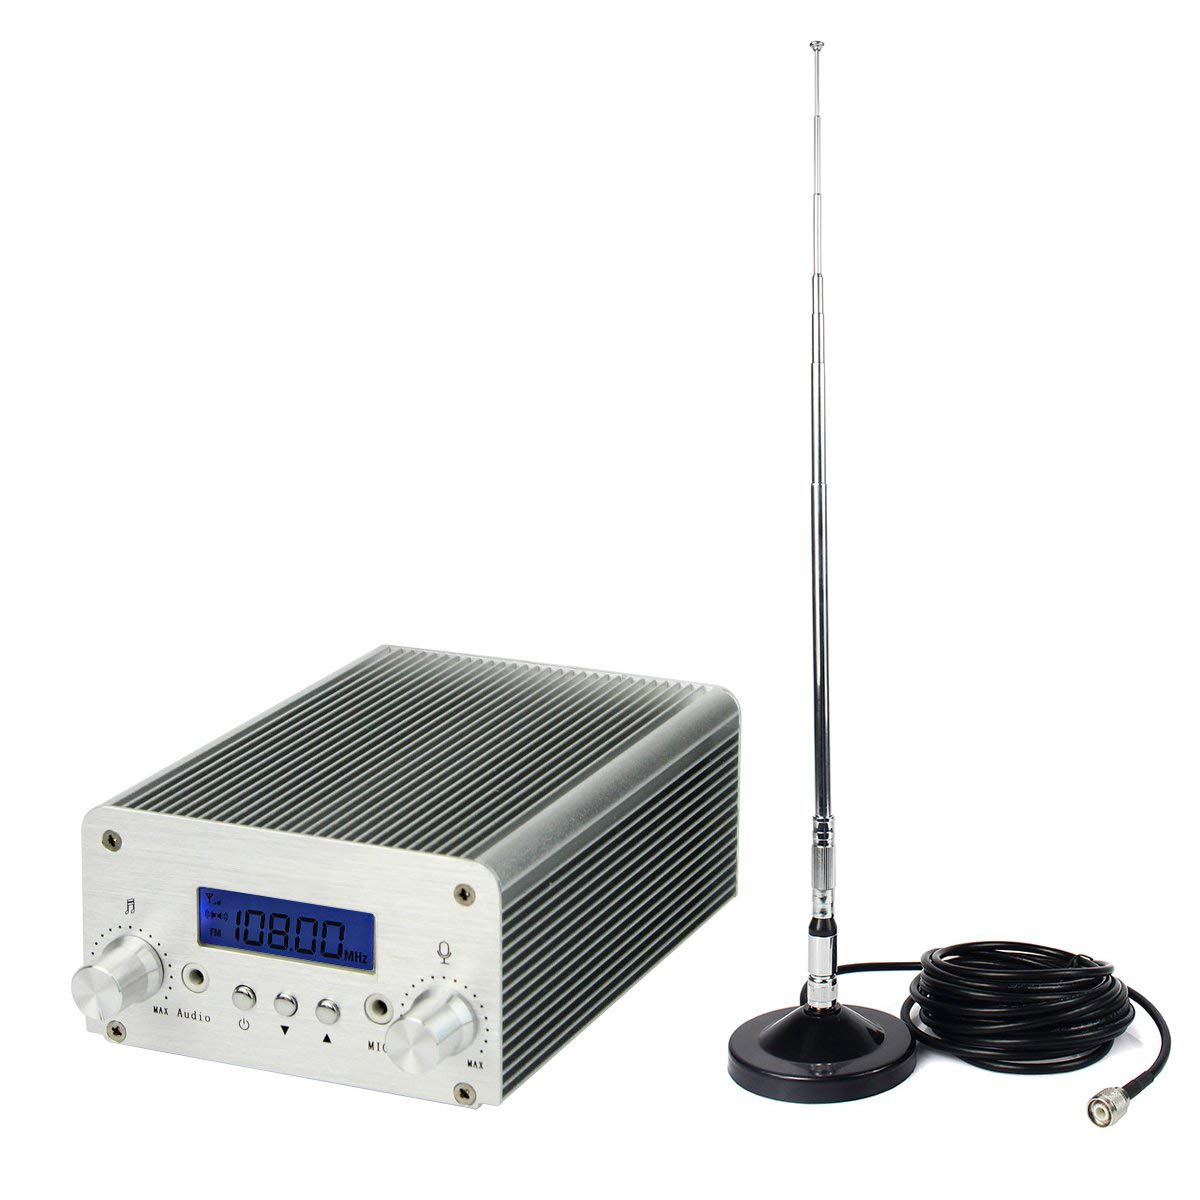 Retekess T15B 5W/15W FM Transmitter Long Range Wireless Mini Radio Broadcast Stereo Station PLL Wireless Music LCD Display with AUX in Line Antenna for Church Home Car Christmas(Silver)